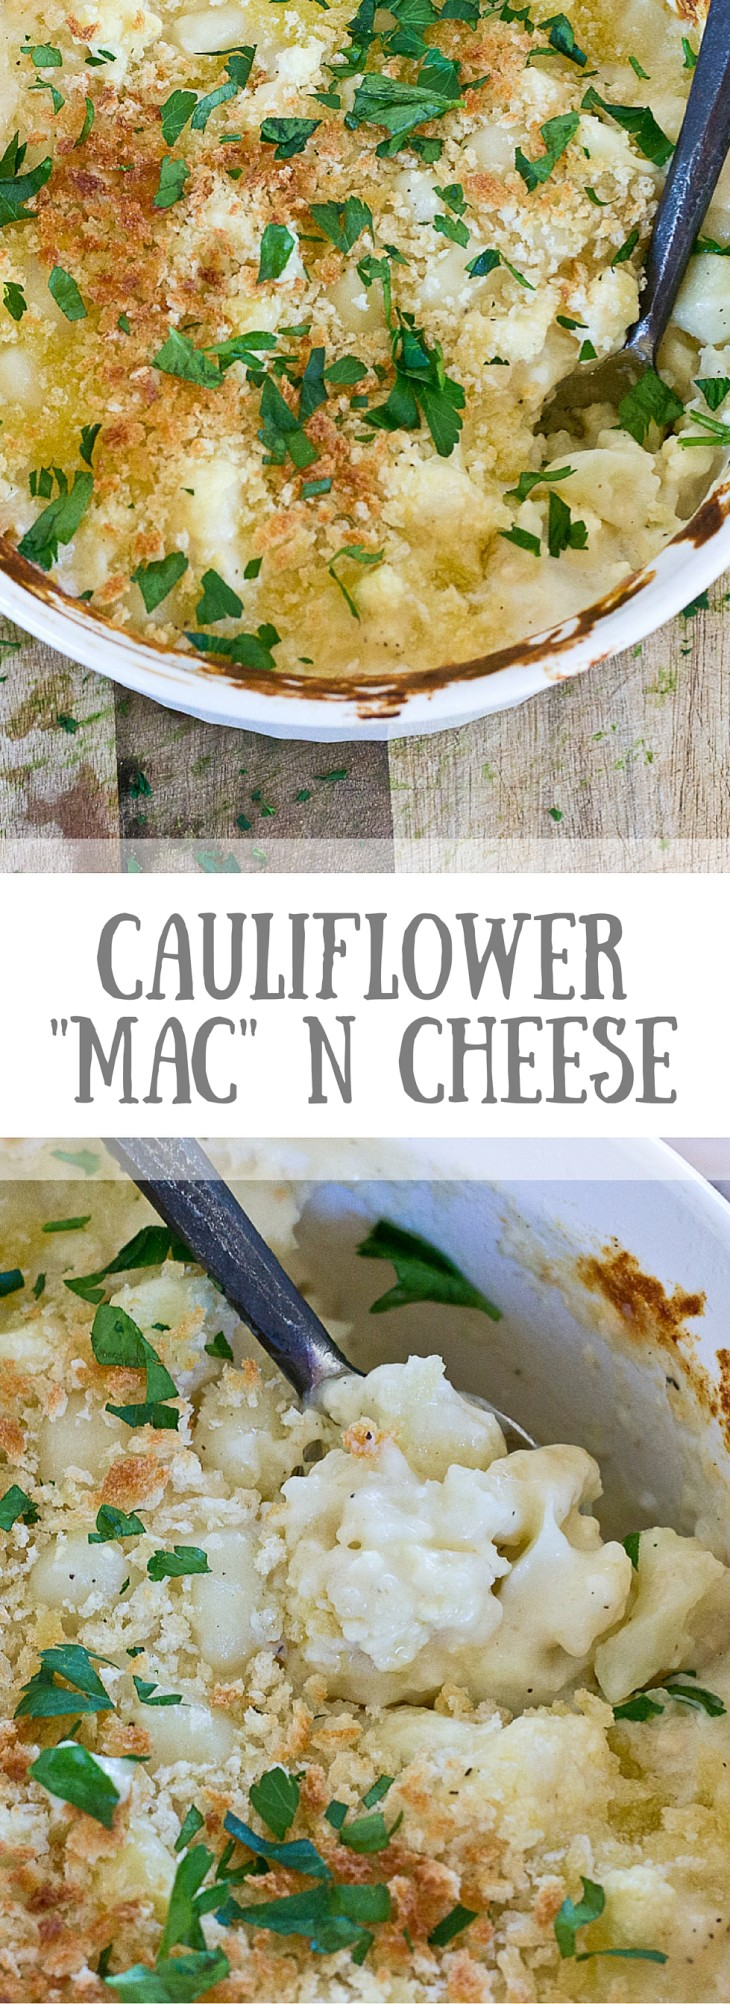 "This Cauliflower ""Mac"" n Cheese, made with gnocchi instead of macaroni is so creamy and so cheesy, it's hard to resist eating it all up! Have a bowl of this ""Mac n Cheese"" and eat your veggies too!"